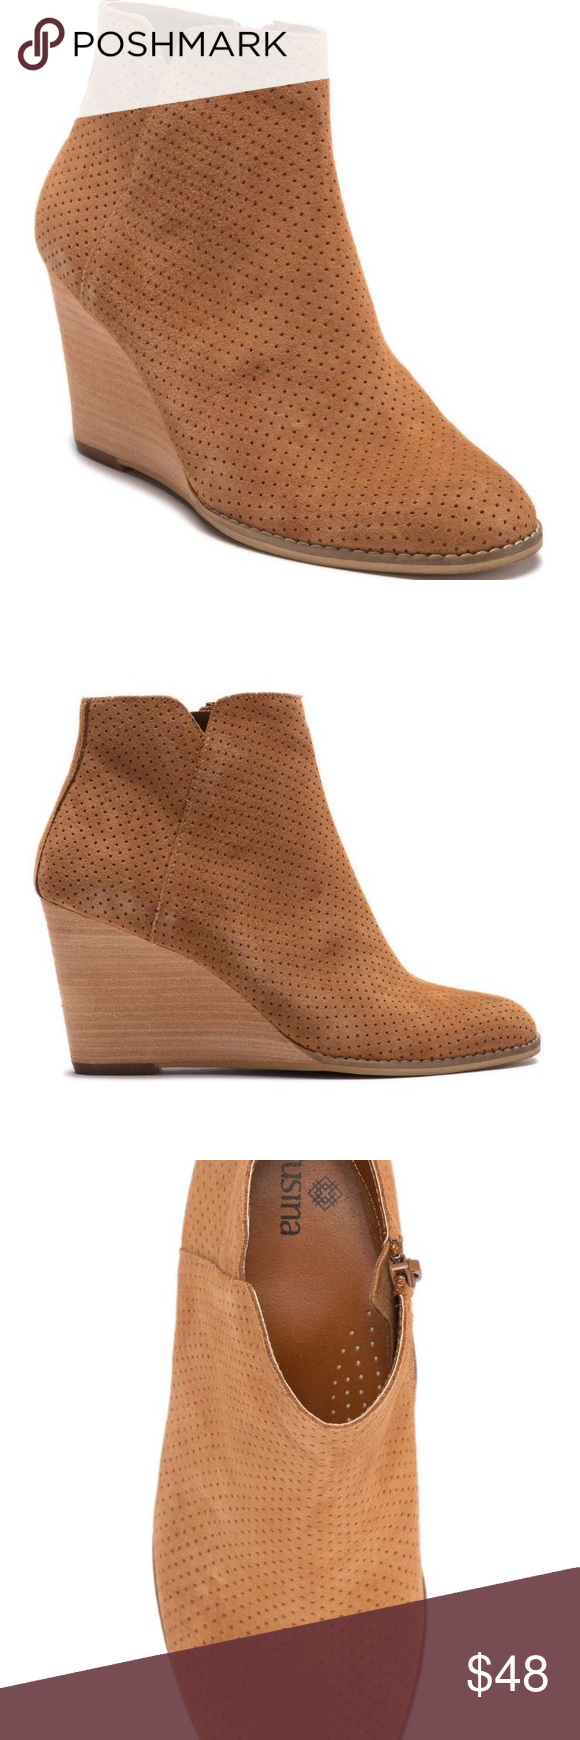 Susina Hannon Leather Wedge Bootie 8.5